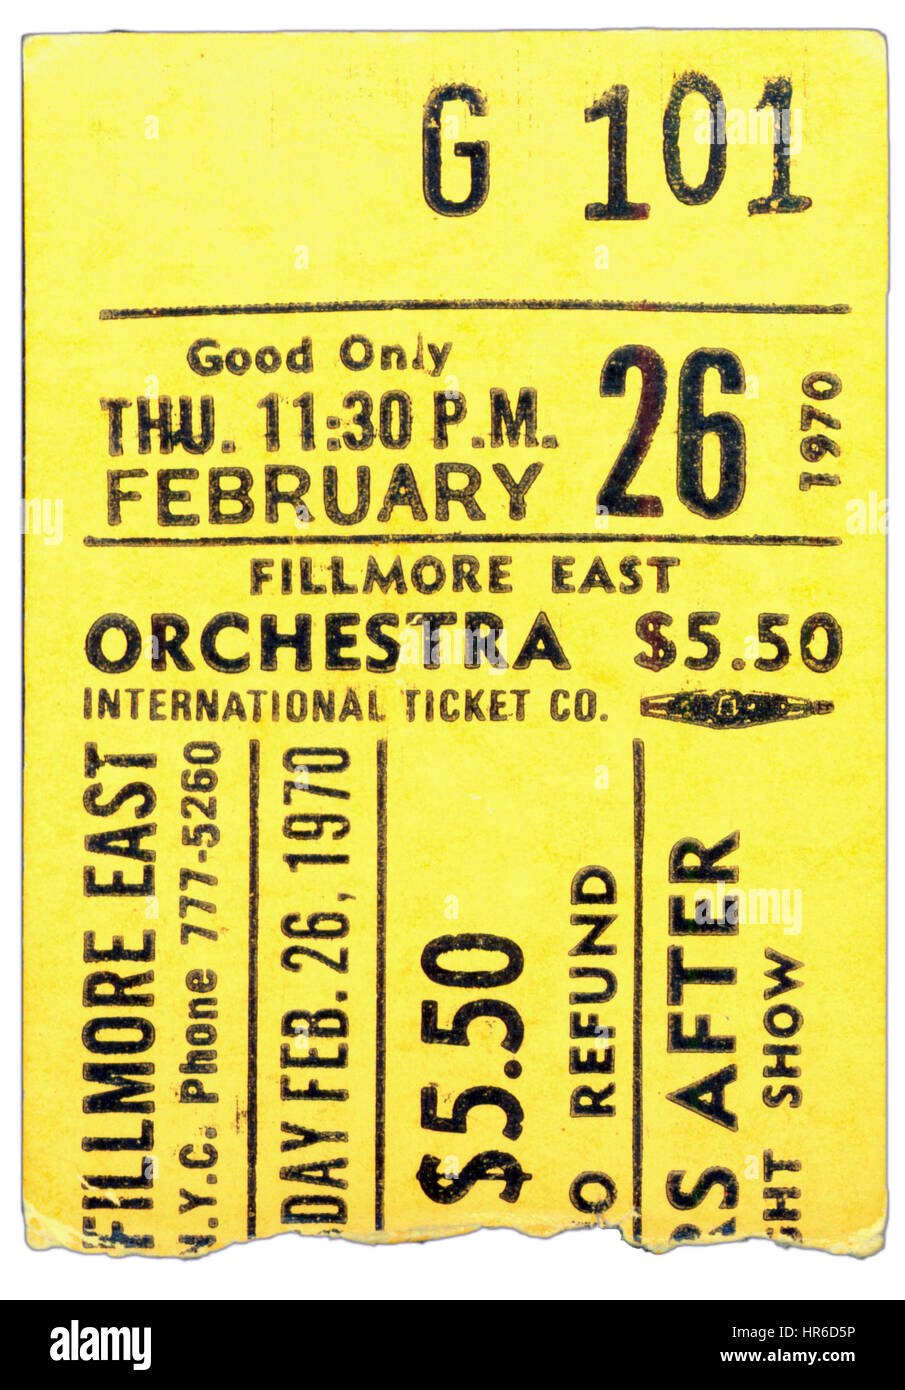 Ticket Stub of Ten Years After performing at Fillmore East in New York City on February 26th, 1970 - Stock Image